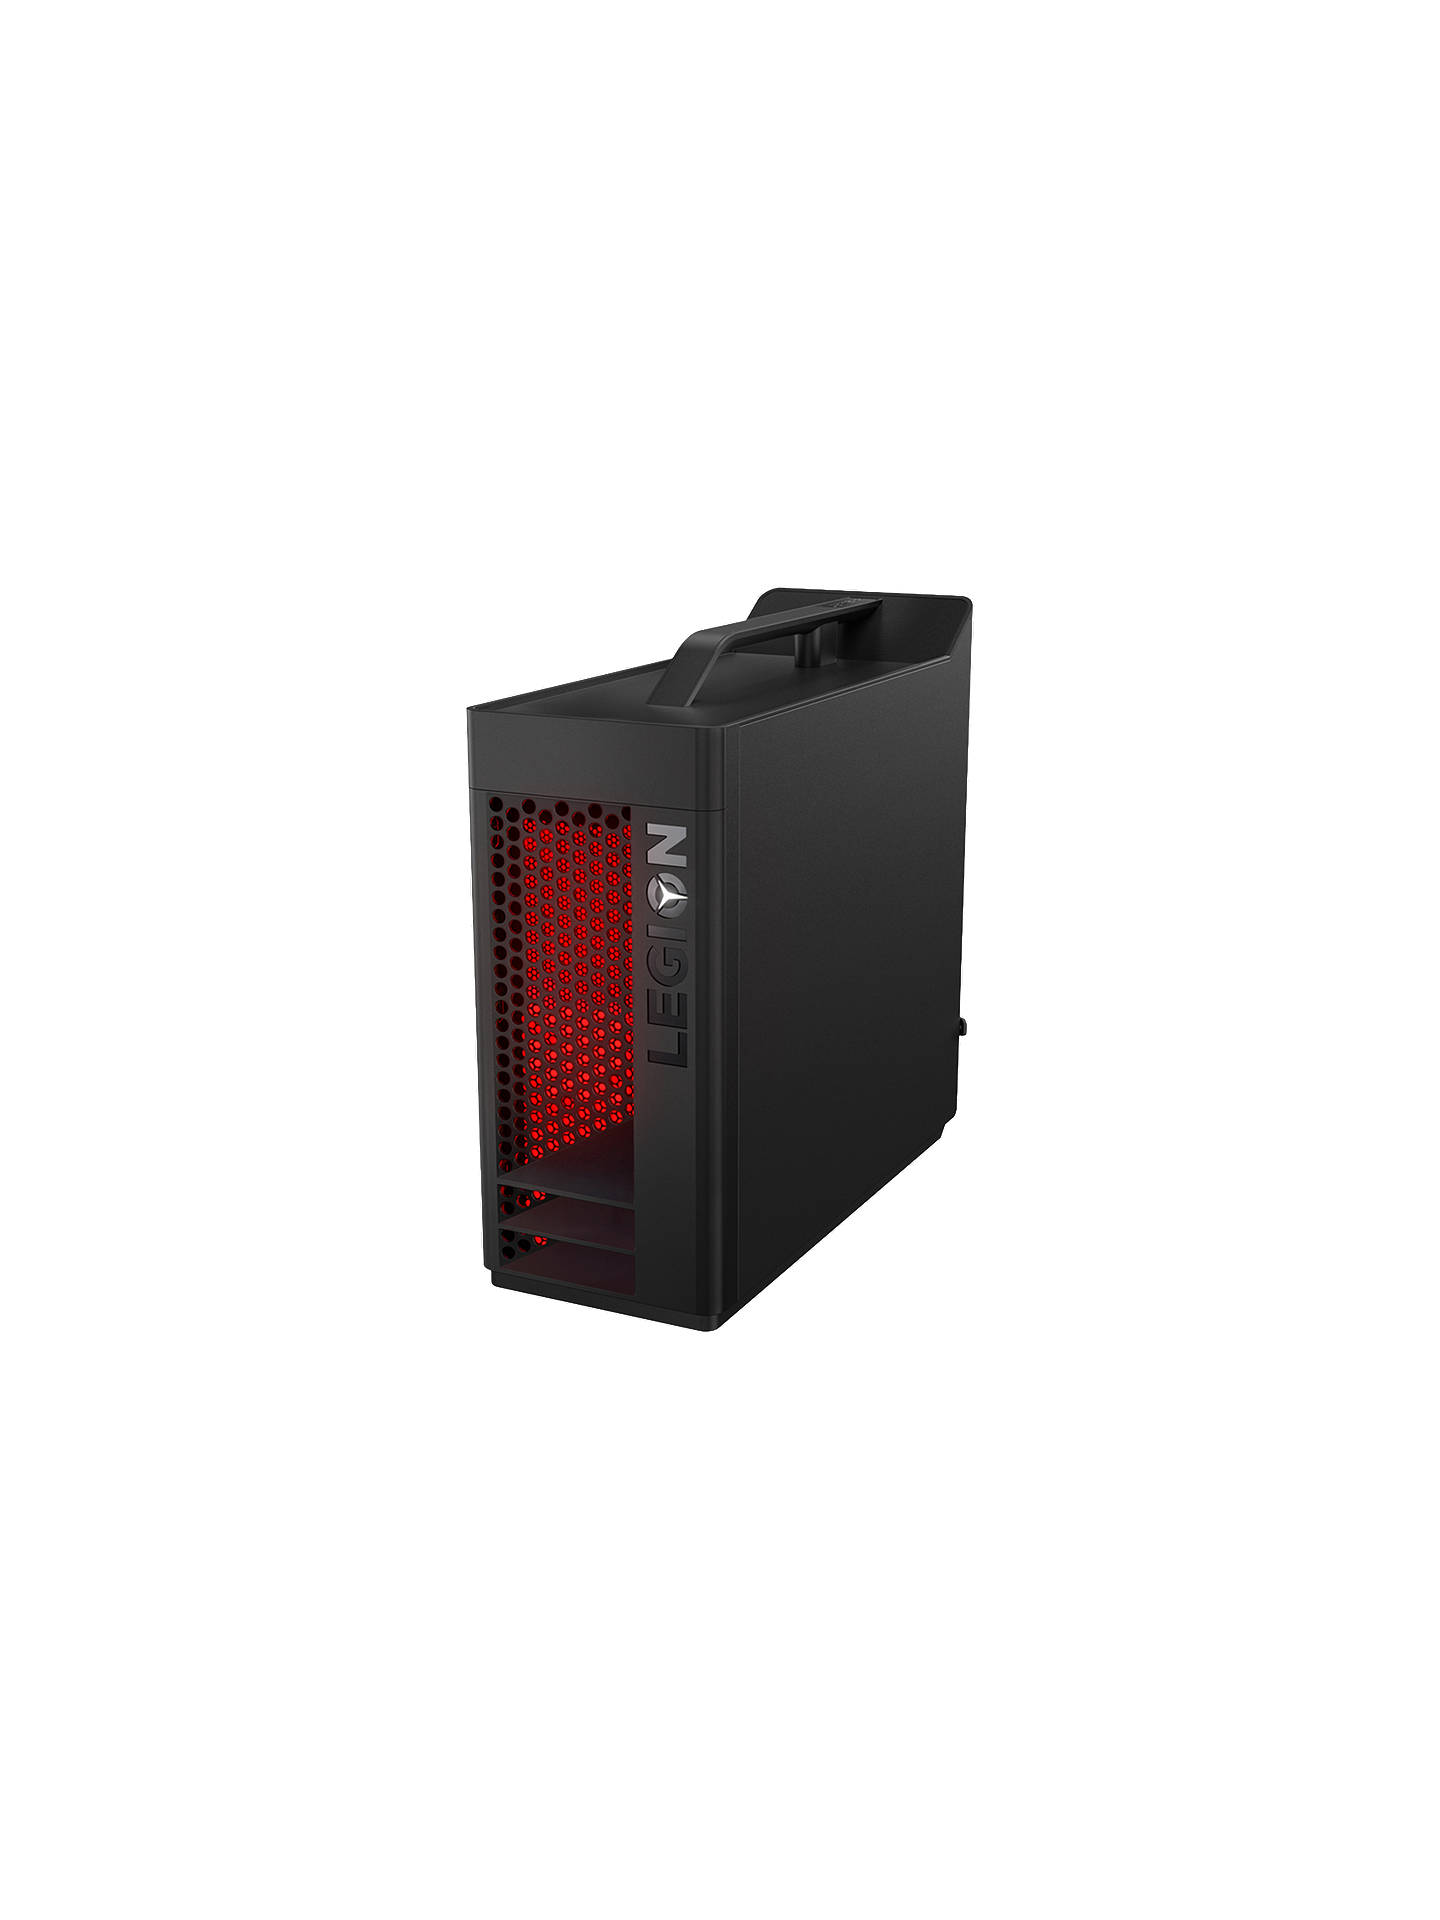 BuyLenovo Legion T530 Gaming PC, Intel Core i7, 16GB RAM, 2TB HDD + 256GB SSD, GeForce GTX 1050Ti, Black Online at johnlewis.com